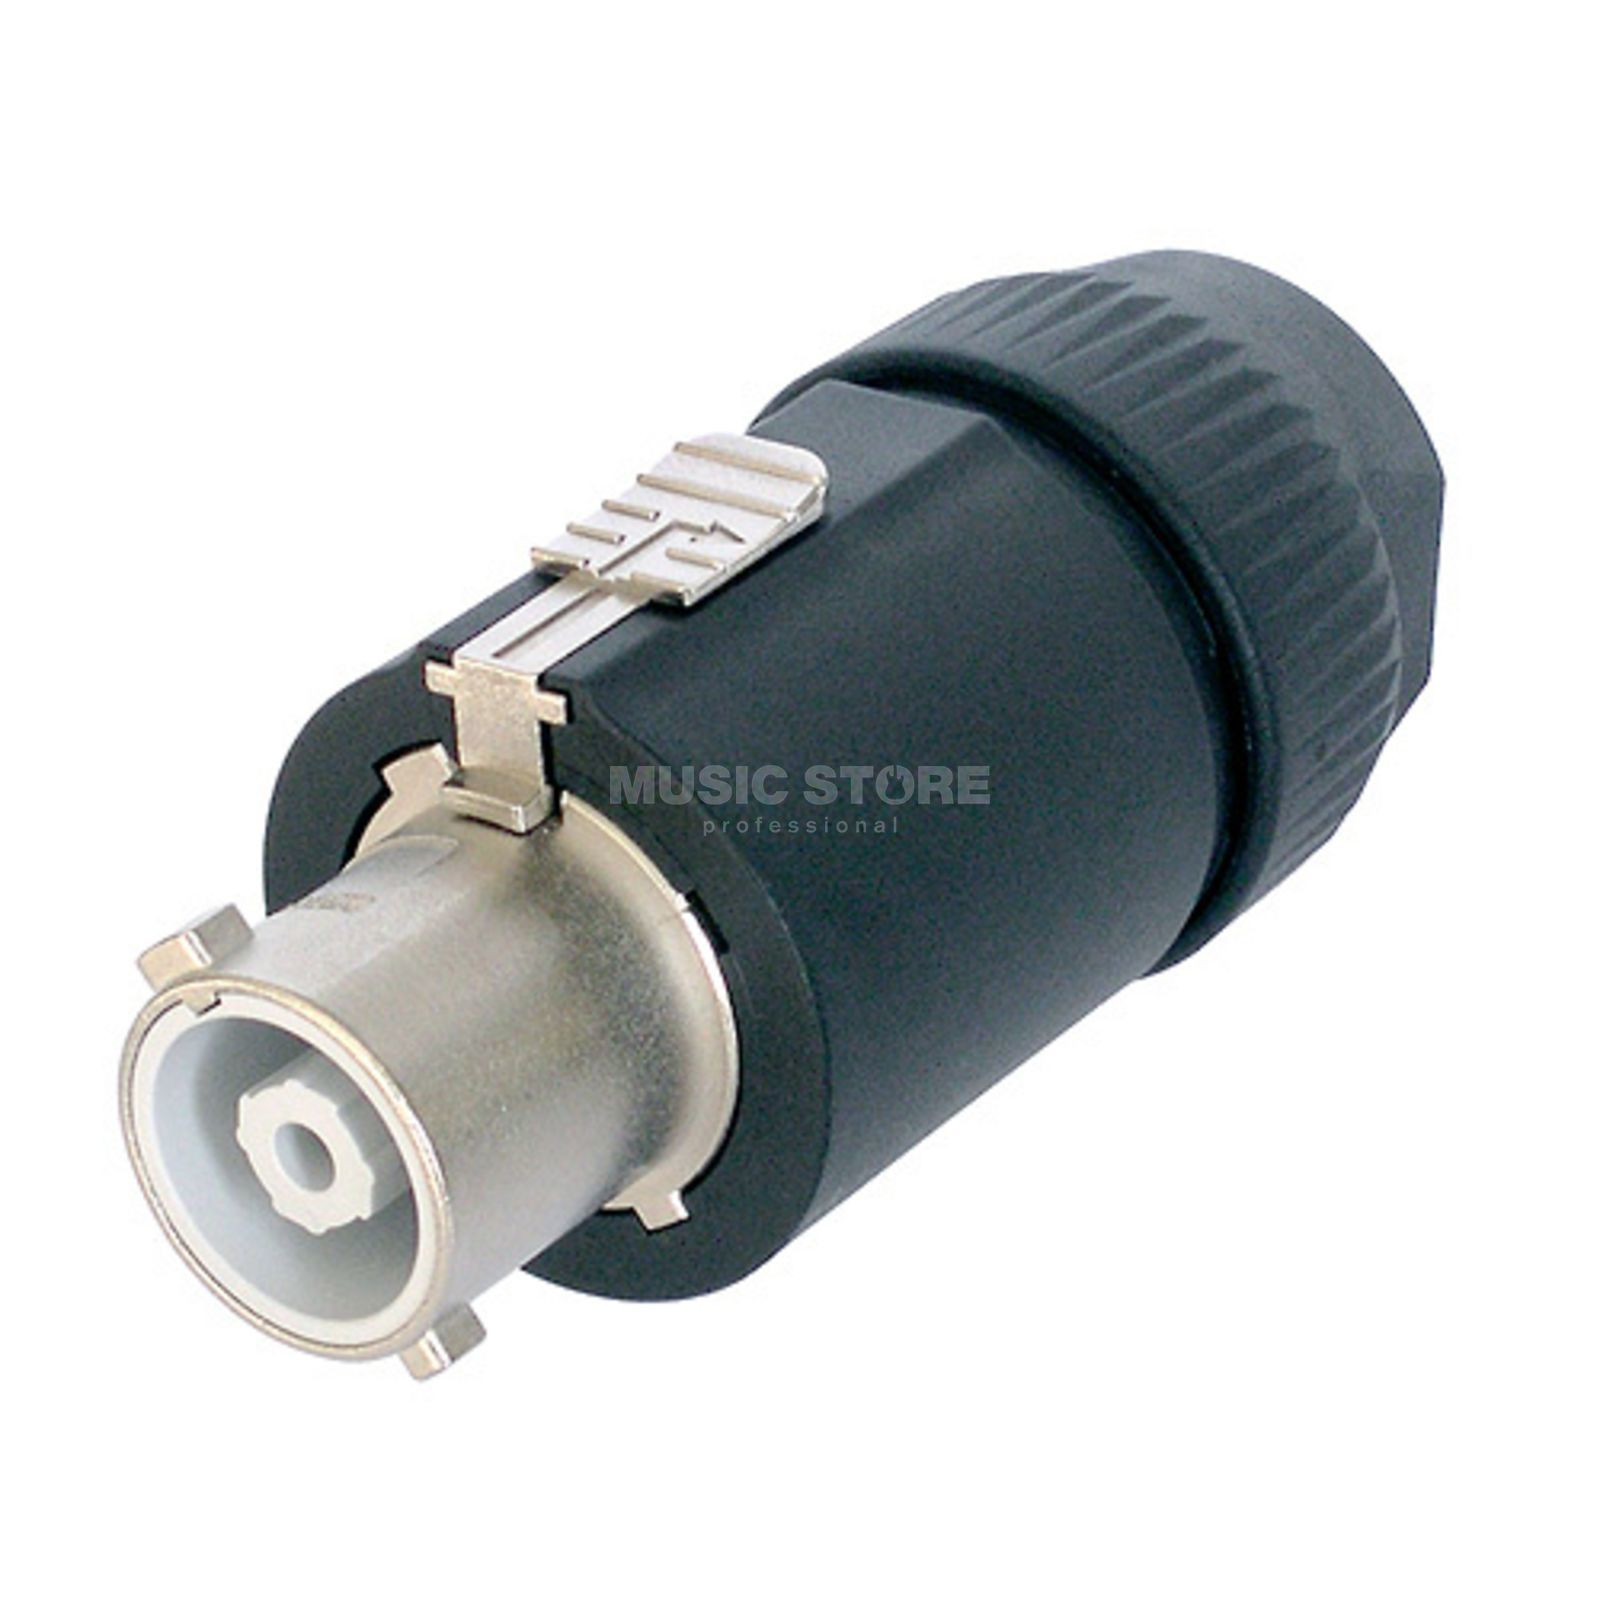 Neutrik NAC3FC-HC power CON 32A cable connector Produktbillede